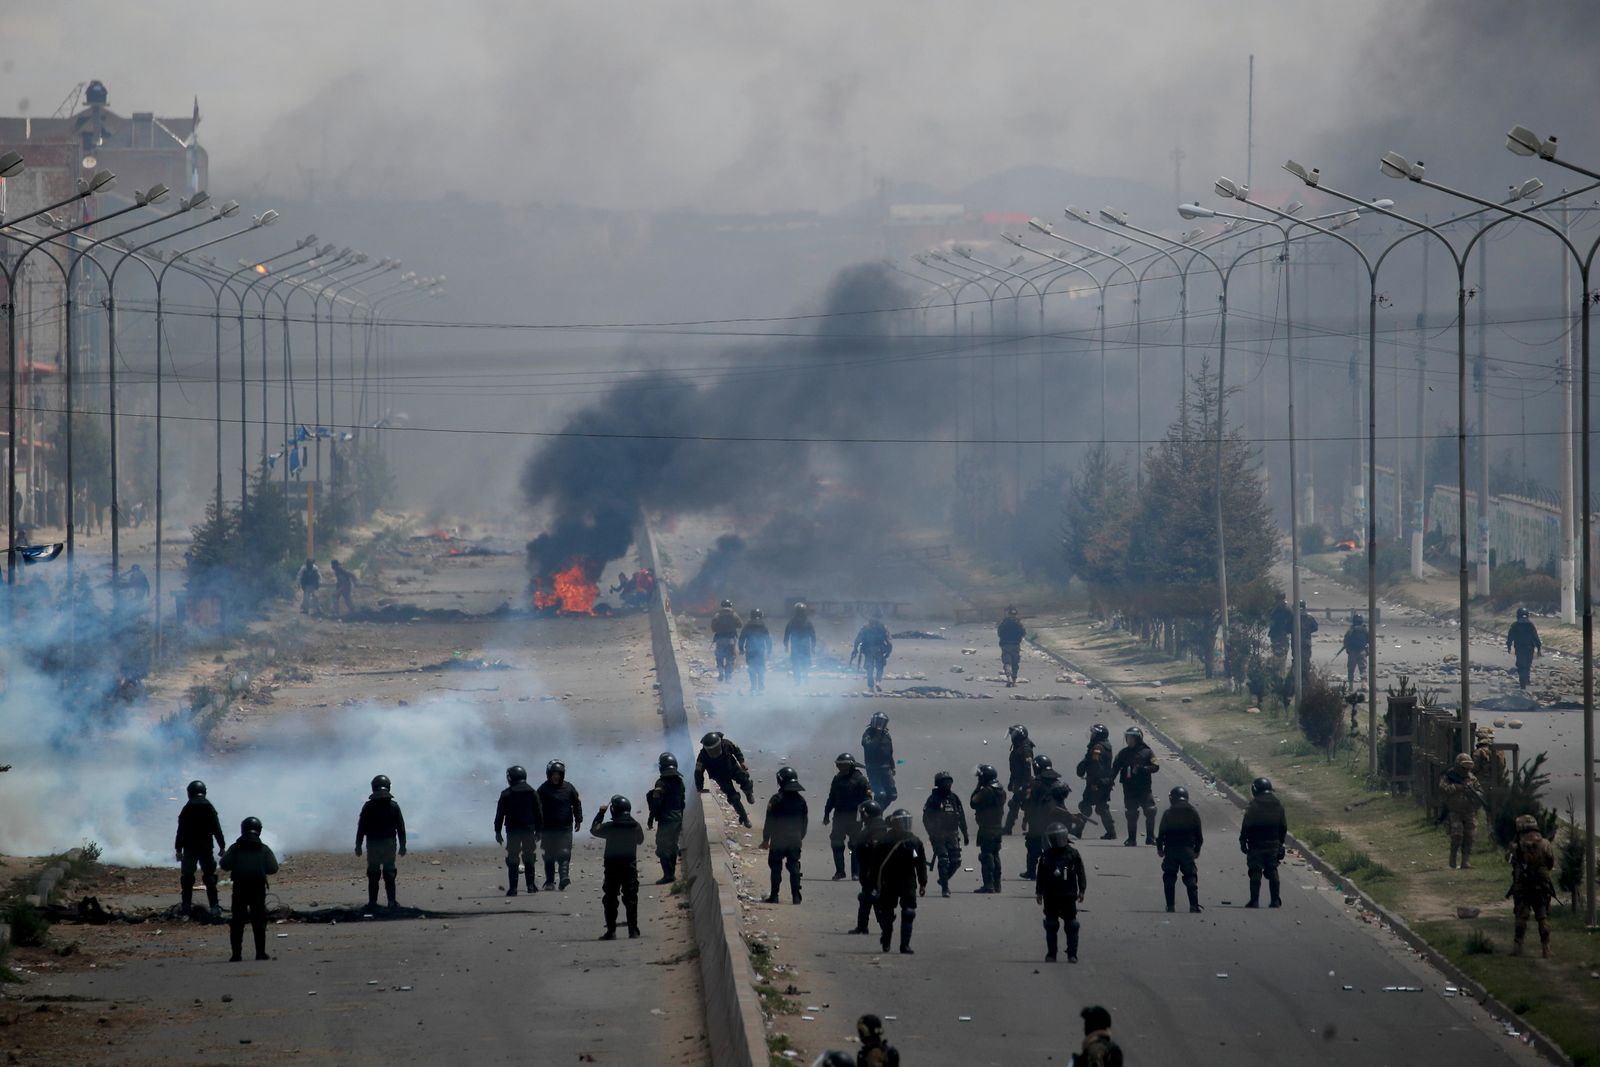 Security forces guard the road leading to a gas plant in El Alto, on the outskirts of La Paz, Bolivia, as supporters of former President Evo Morales set up barricades, Tuesday, Nov. 19, 2019. (AP Photo/Natacha Pisarenko)